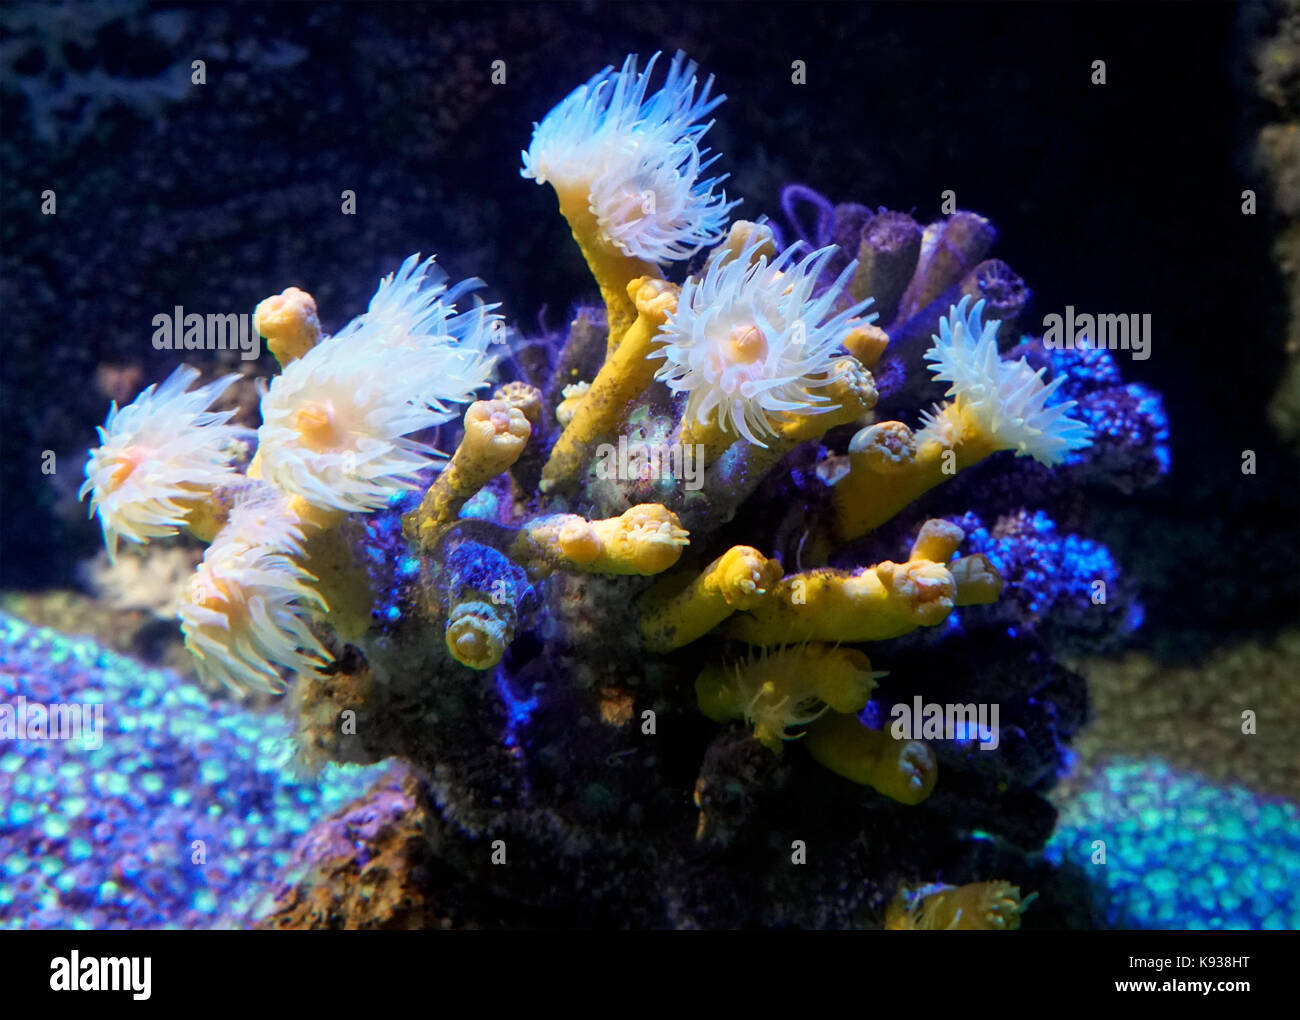 Stony cup coral or tree coral, Dendrophyllia ramea. Close-up of polyps on aquarium. Those coral popyps don't - Stock Image